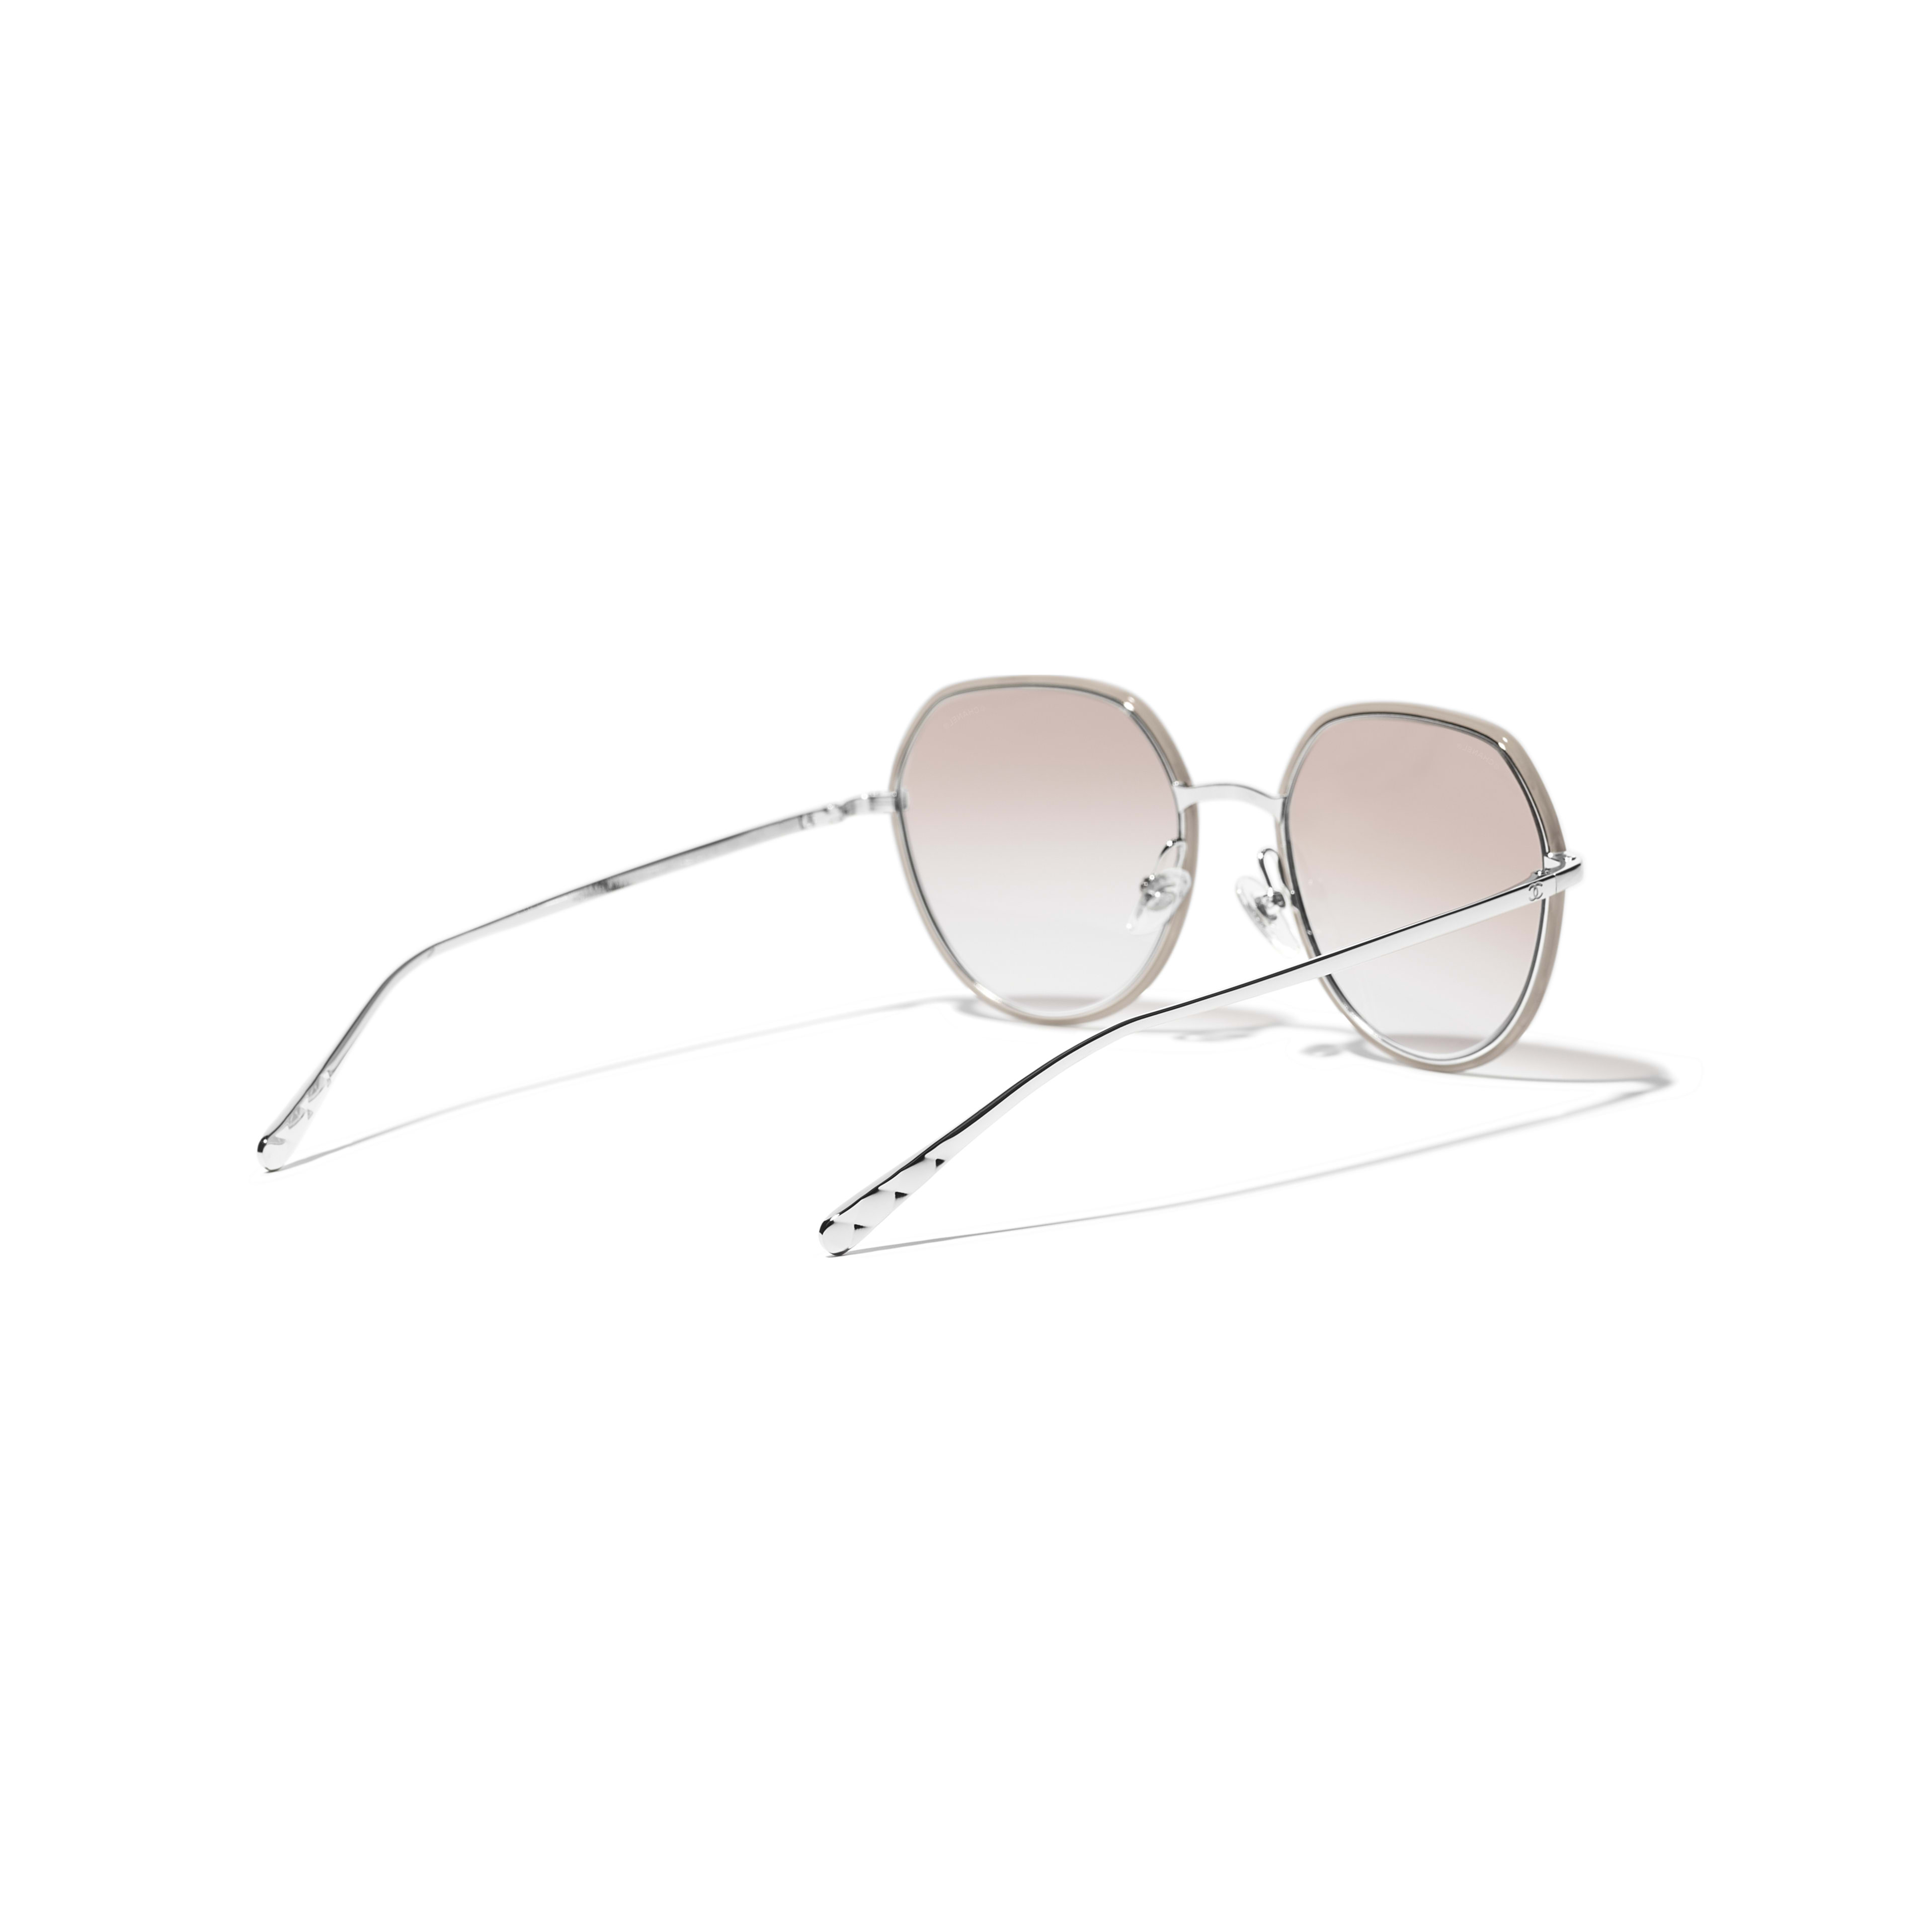 Round Sunglasses - Silver & Beige - Metal - Extra view - see full sized version